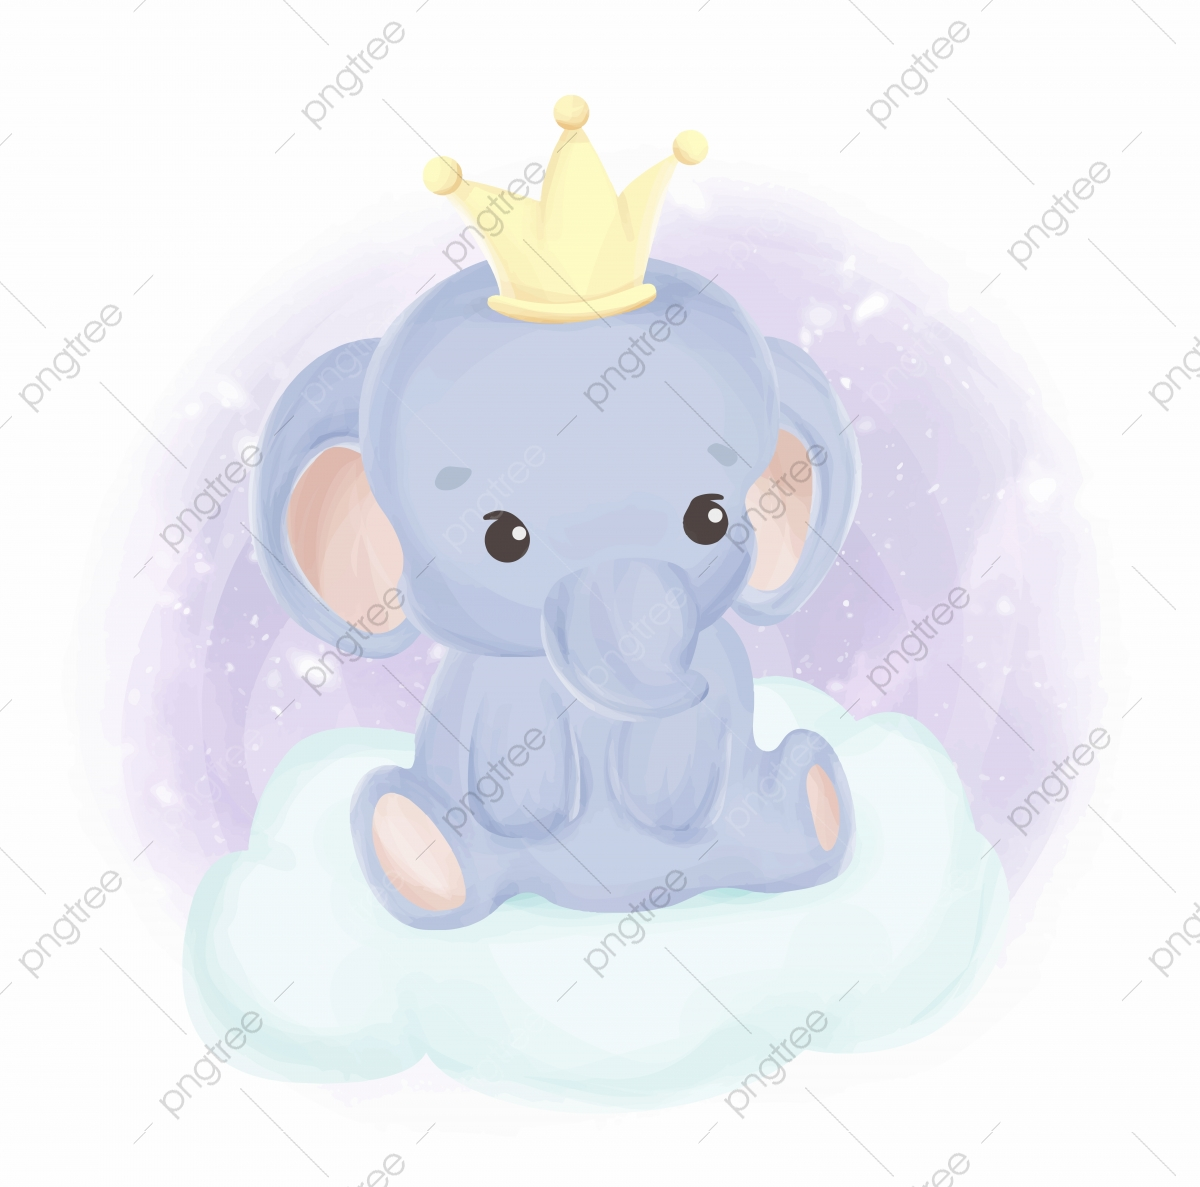 Baby Elephant Png Vector Psd And Clipart With Transparent Background For Free Download Pngtree Are you looking for baby elephant vector design images templates psd or png vectors files? https pngtree com freepng king of baby elephant watercolor 5316337 html